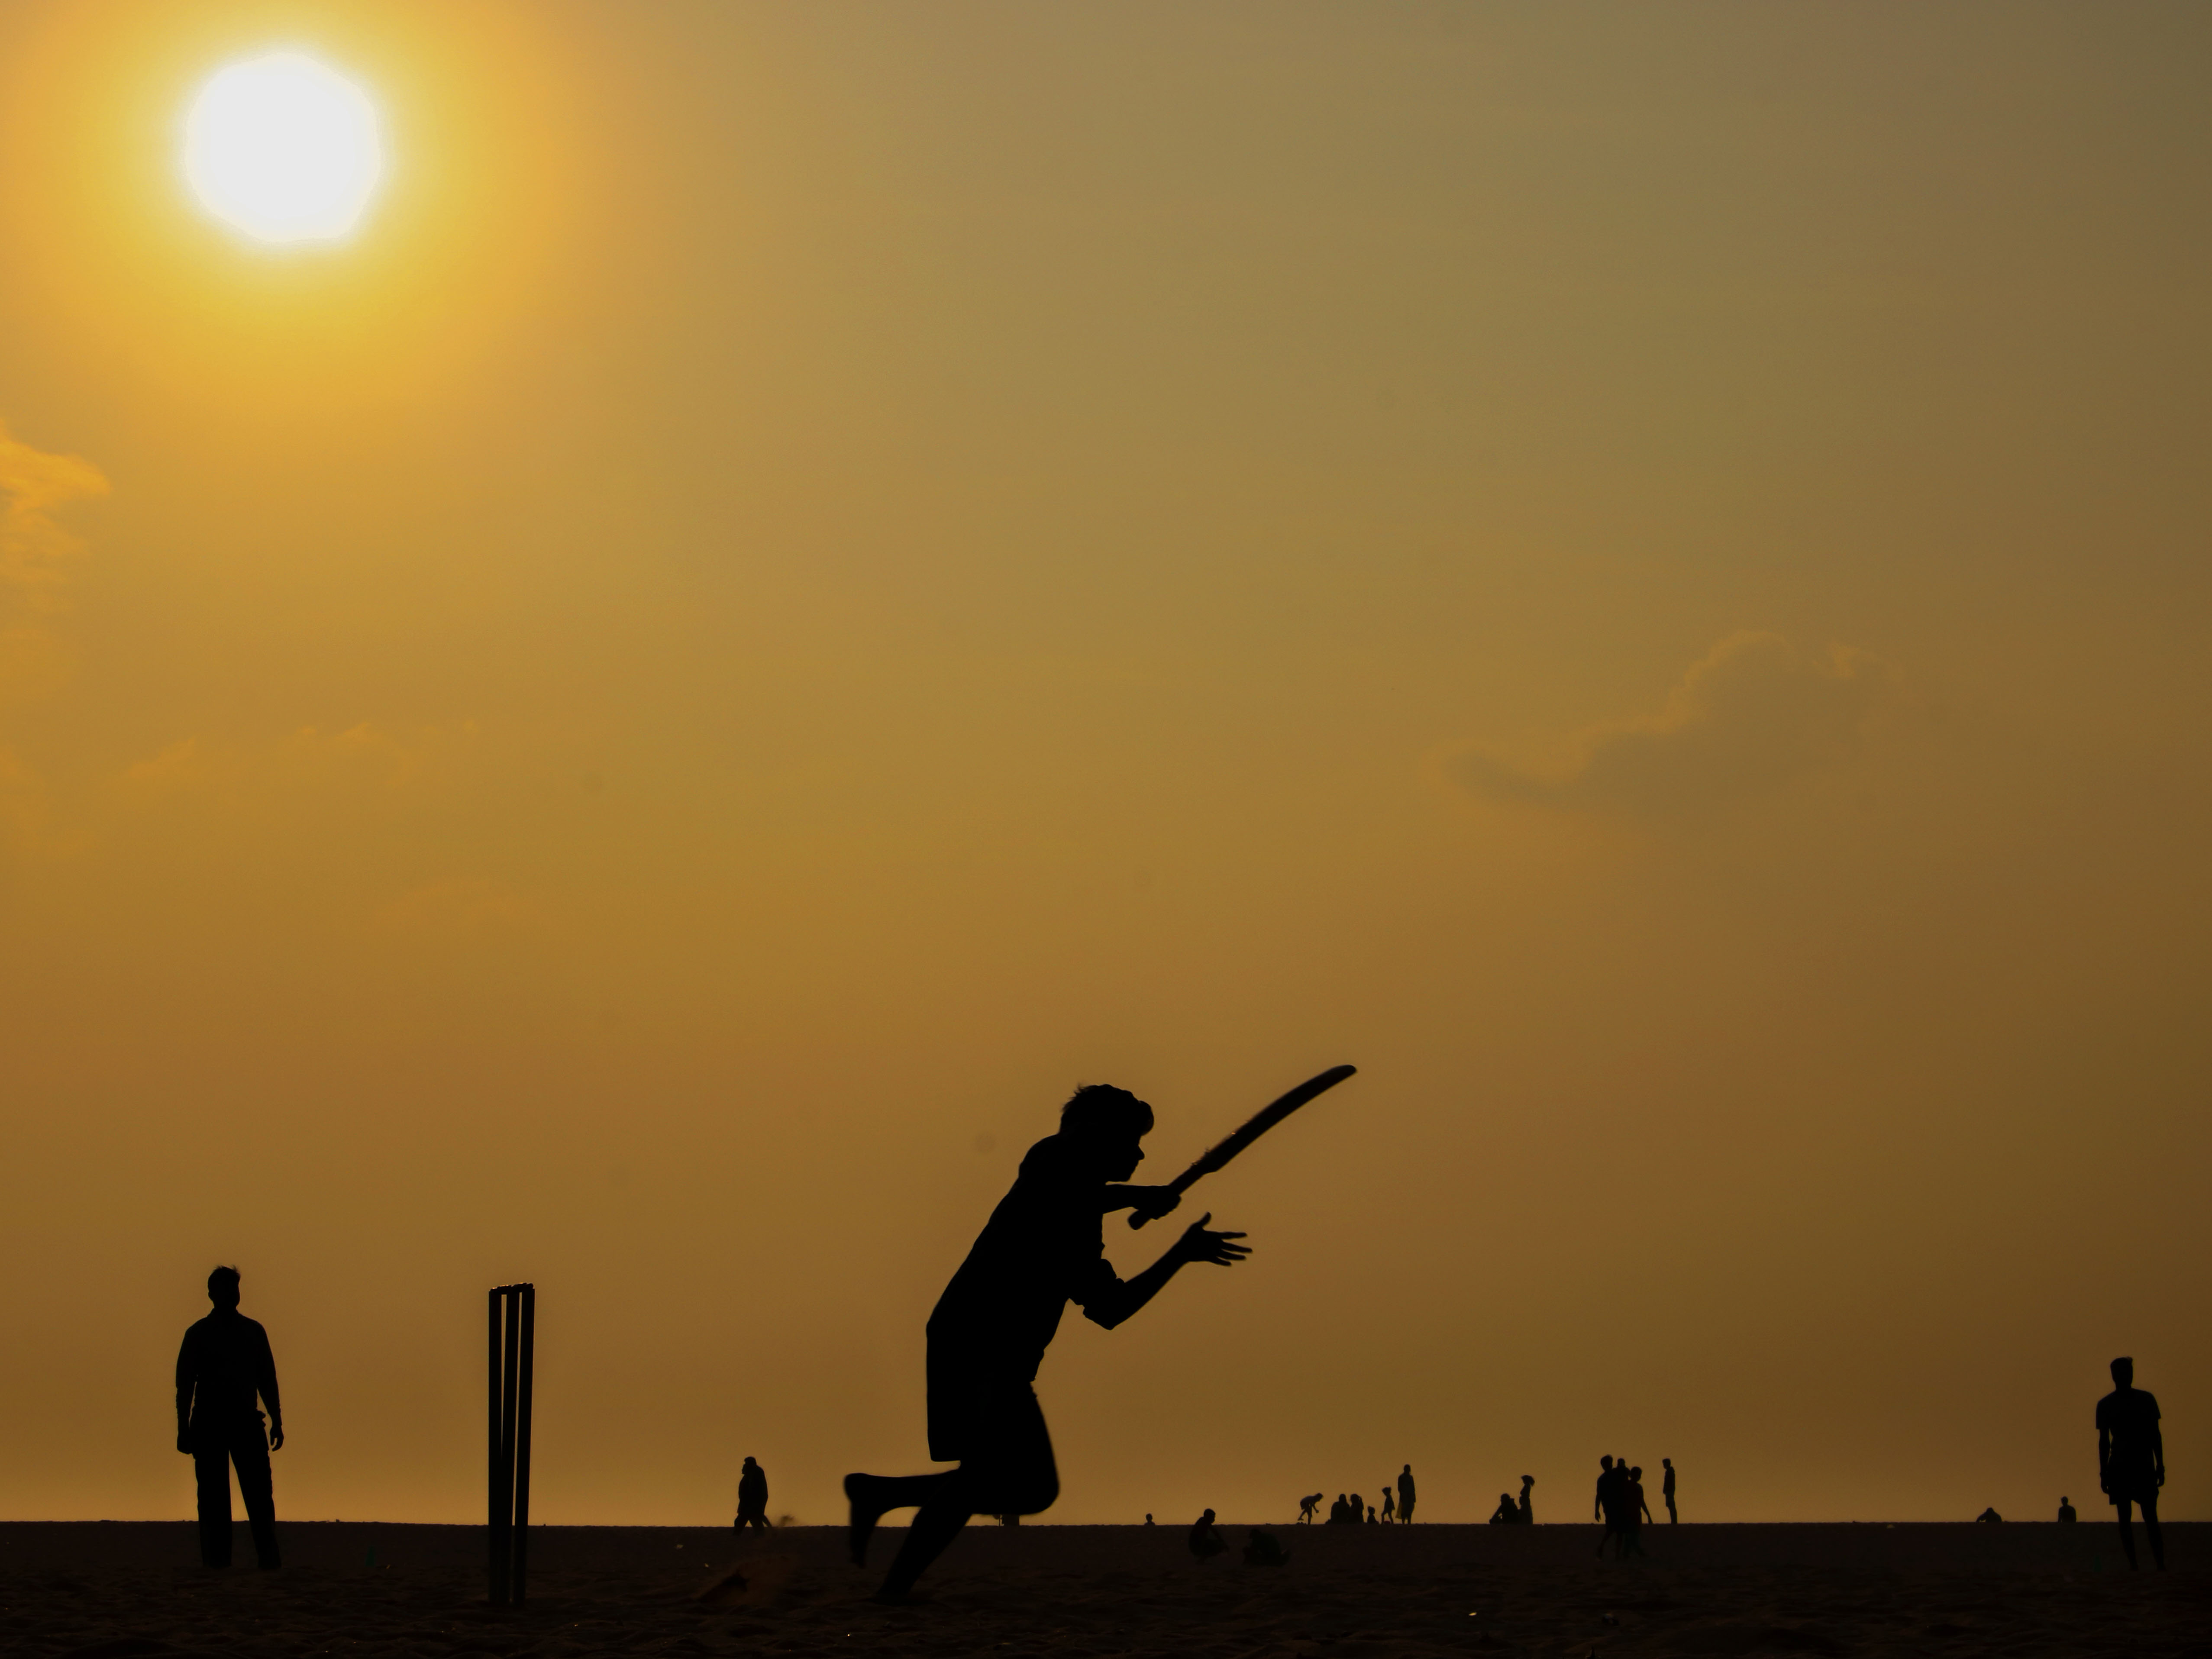 Morning cricket routine